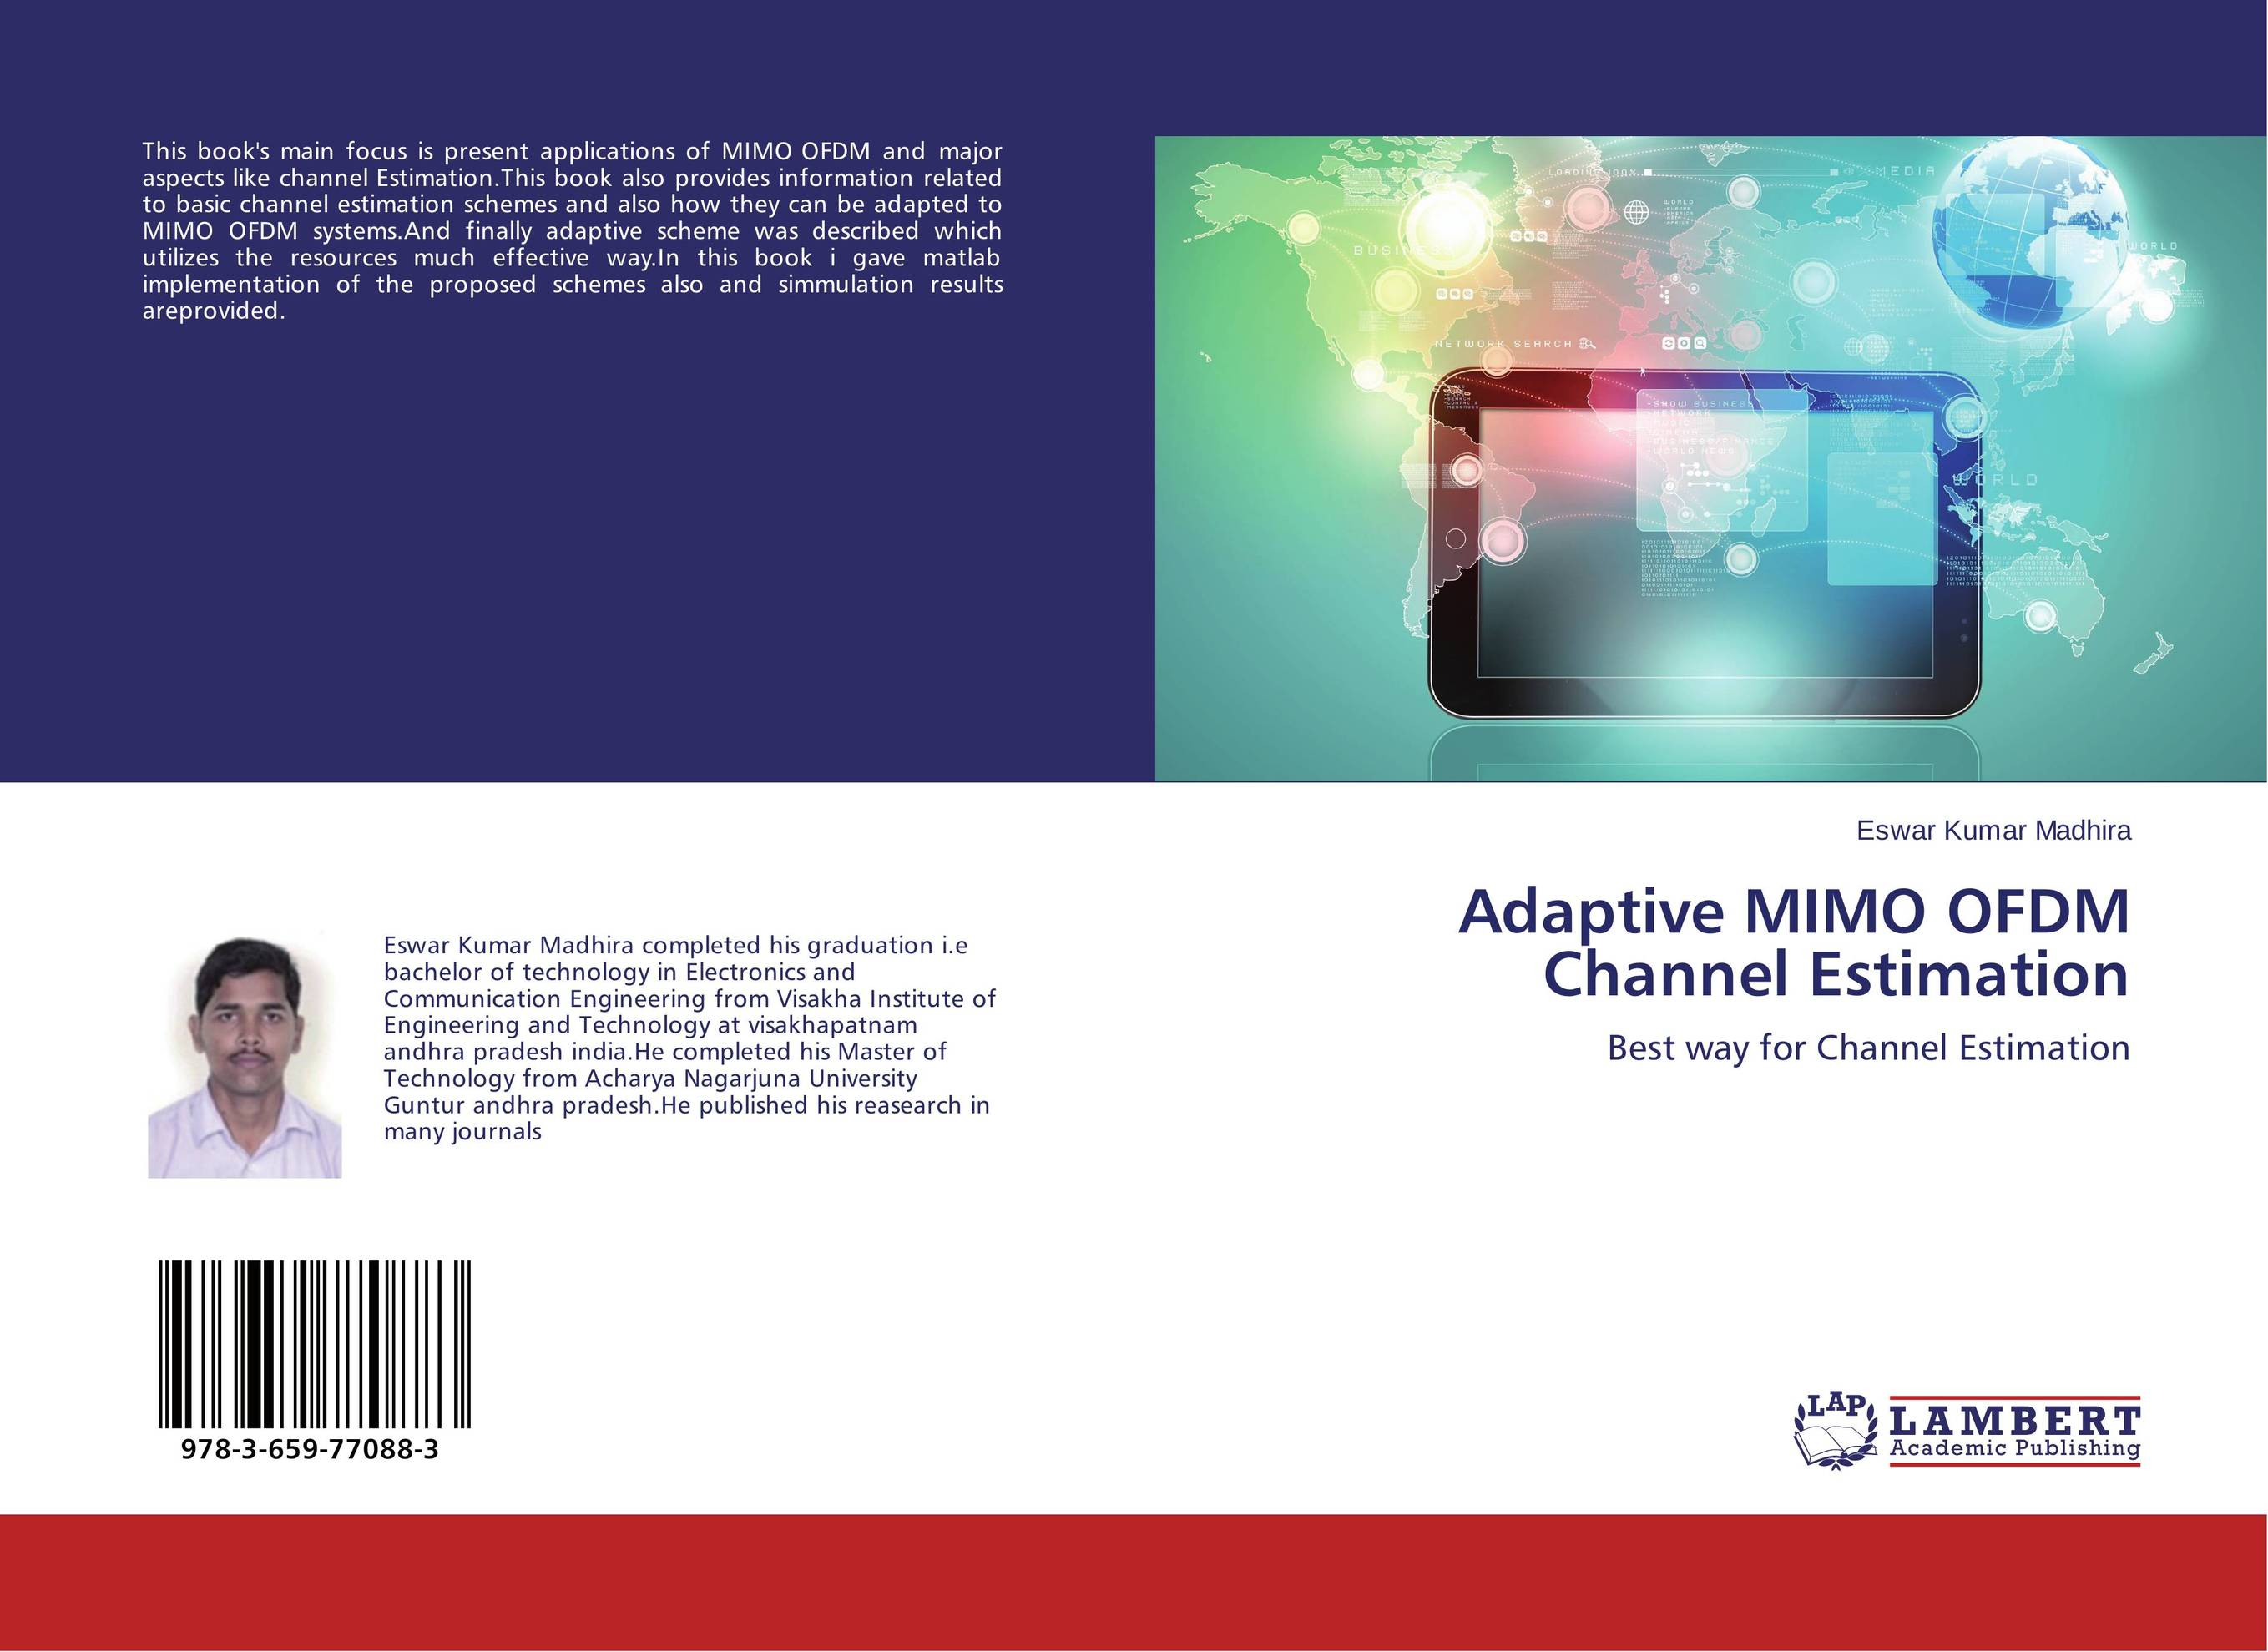 Adaptive MIMO OFDM Channel Estimation wireless ofdm and mimo ofdm communications